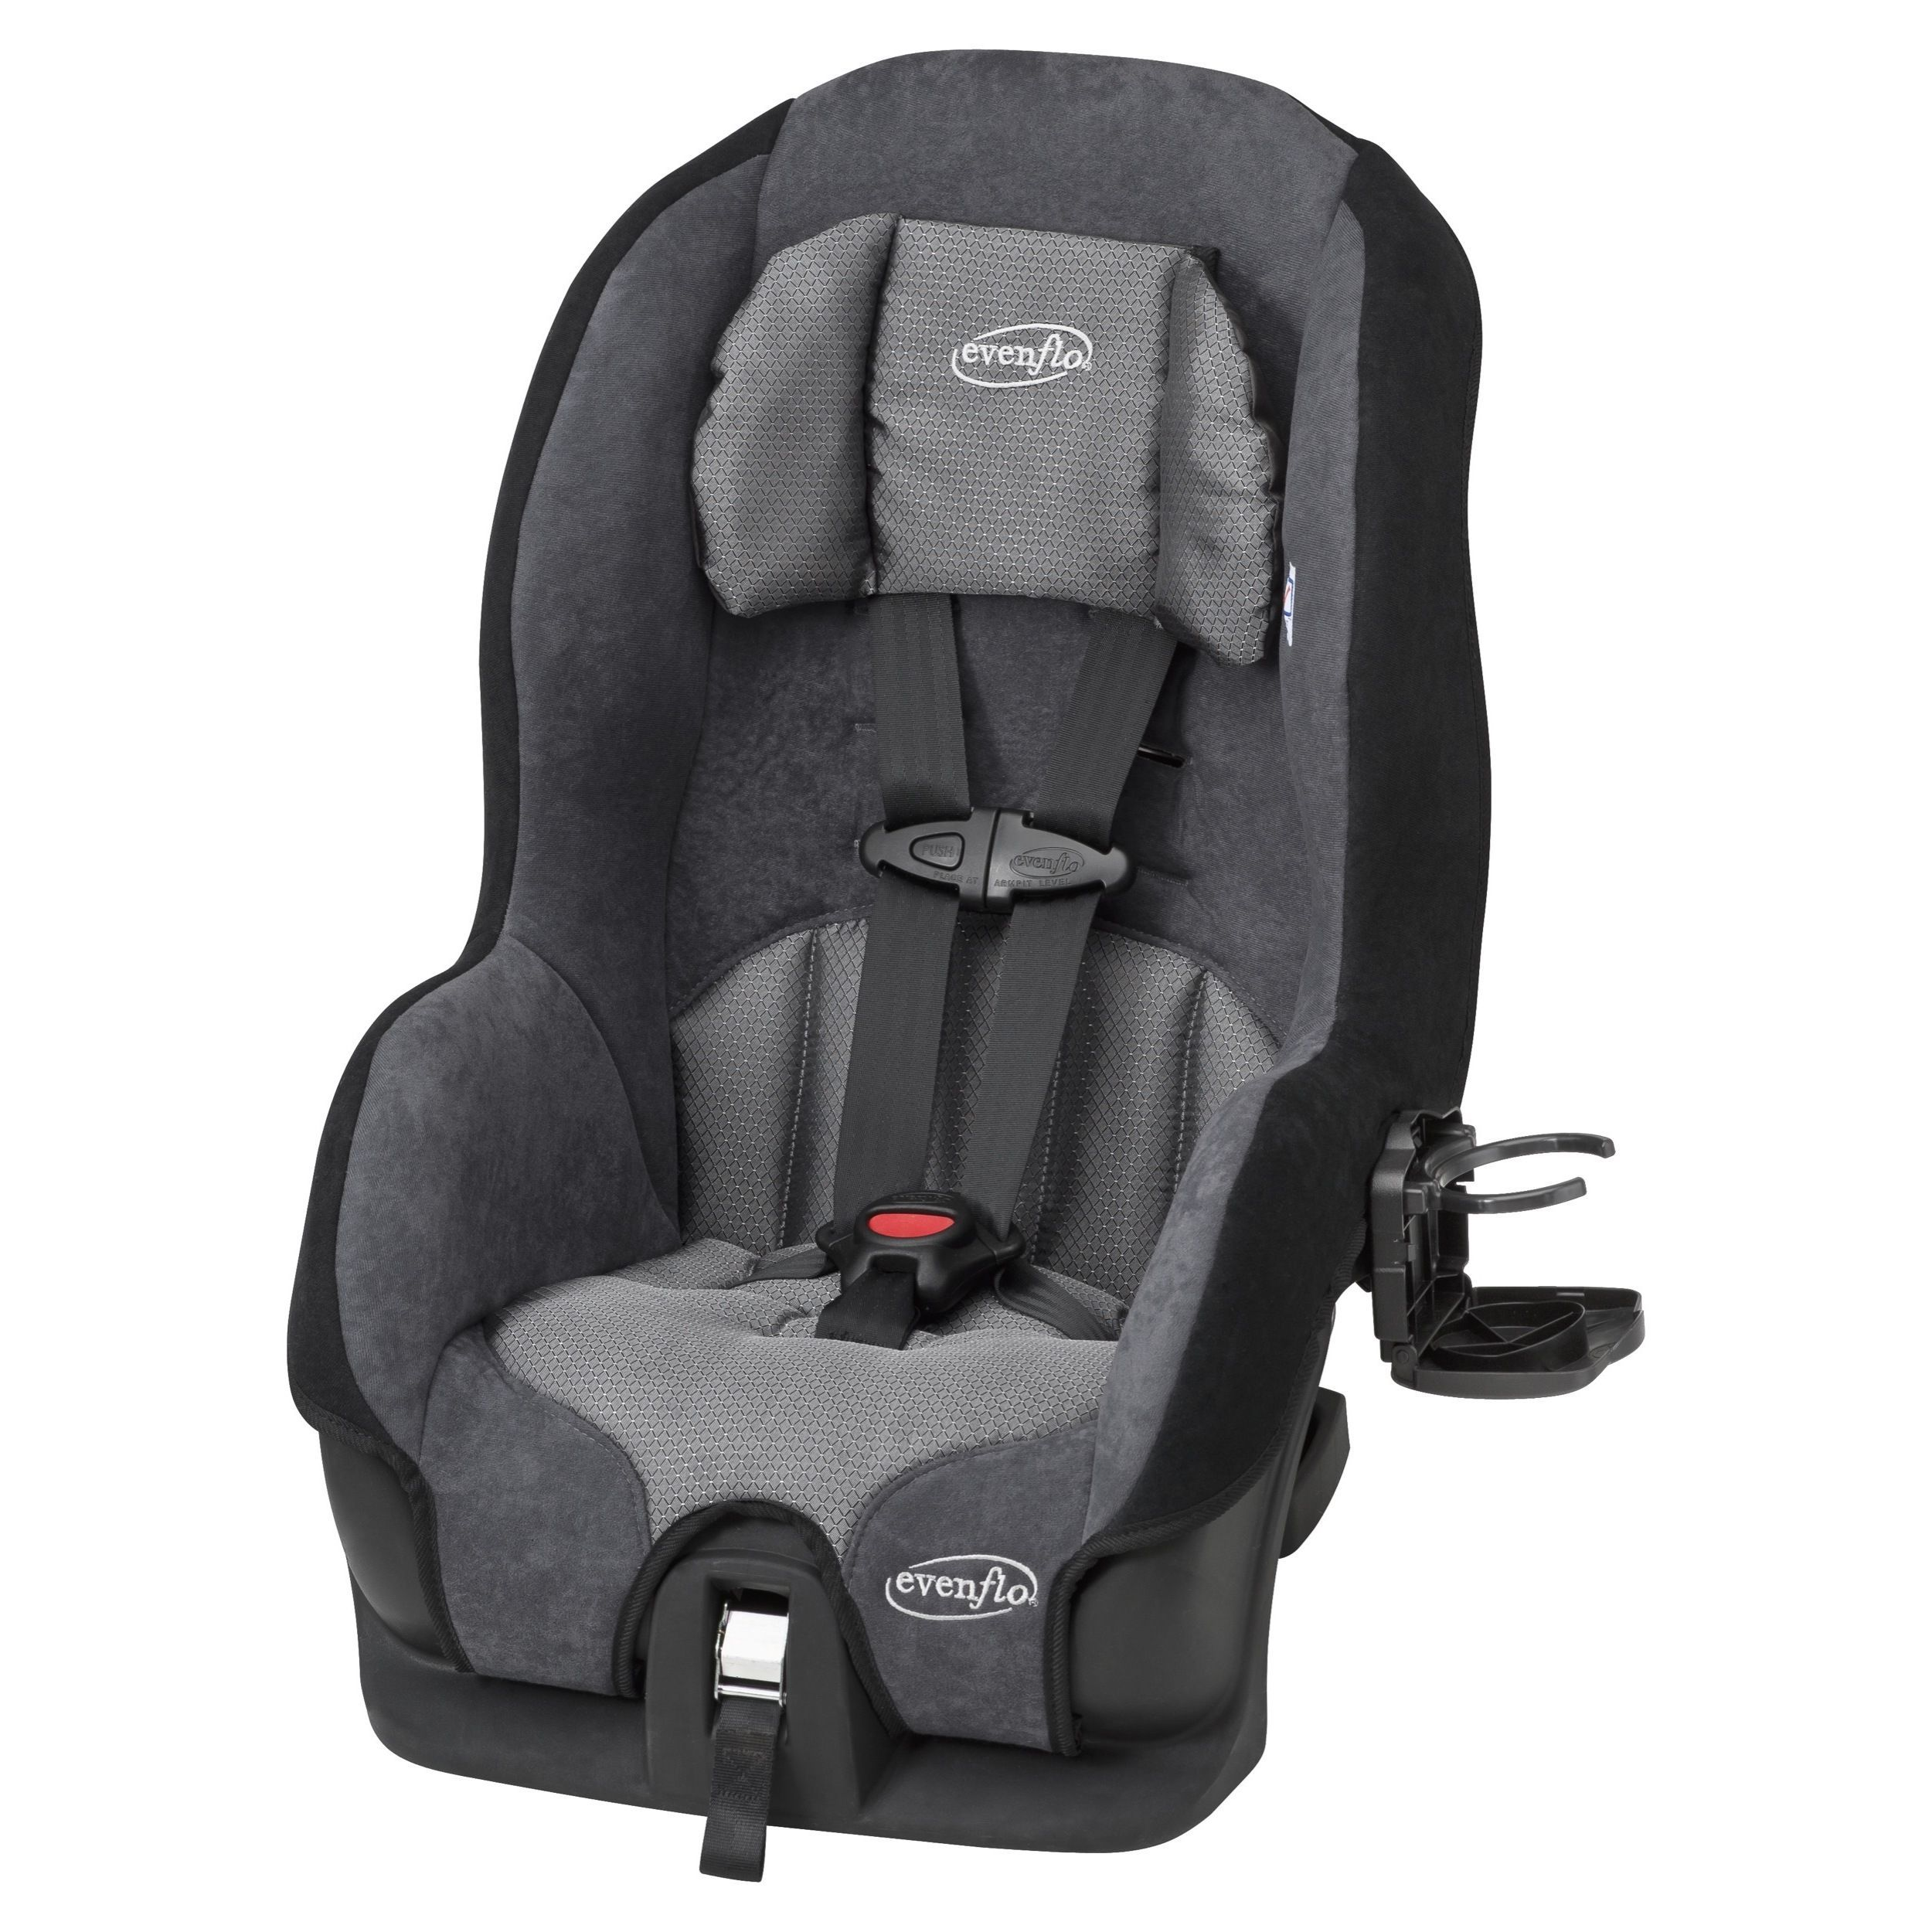 Evenflo Tribute Lx Convertible Car Seat In Saturn Saturn Baby